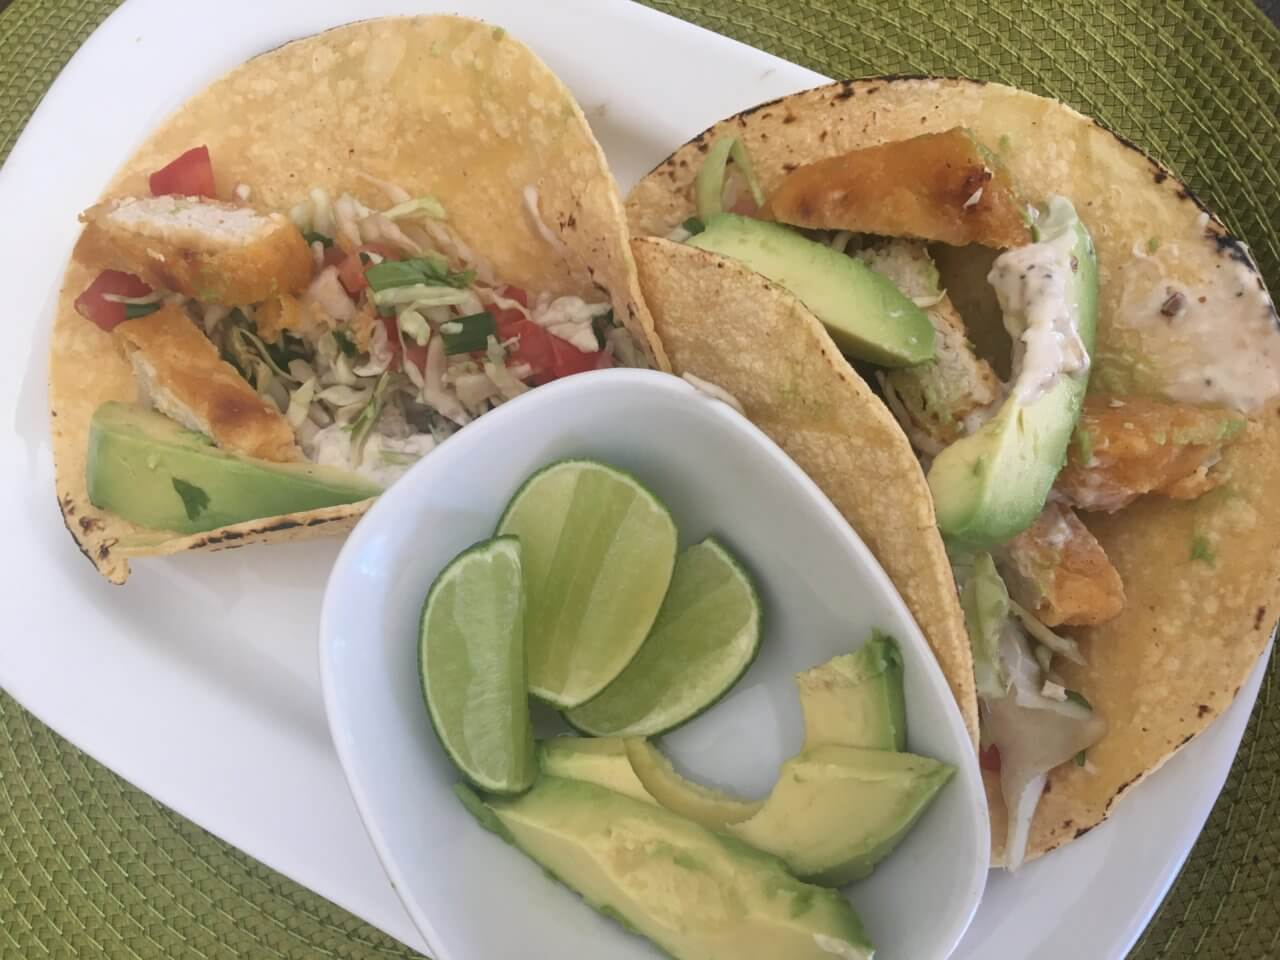 Vegan-Fish-Tacos-2-1280x960.jpg